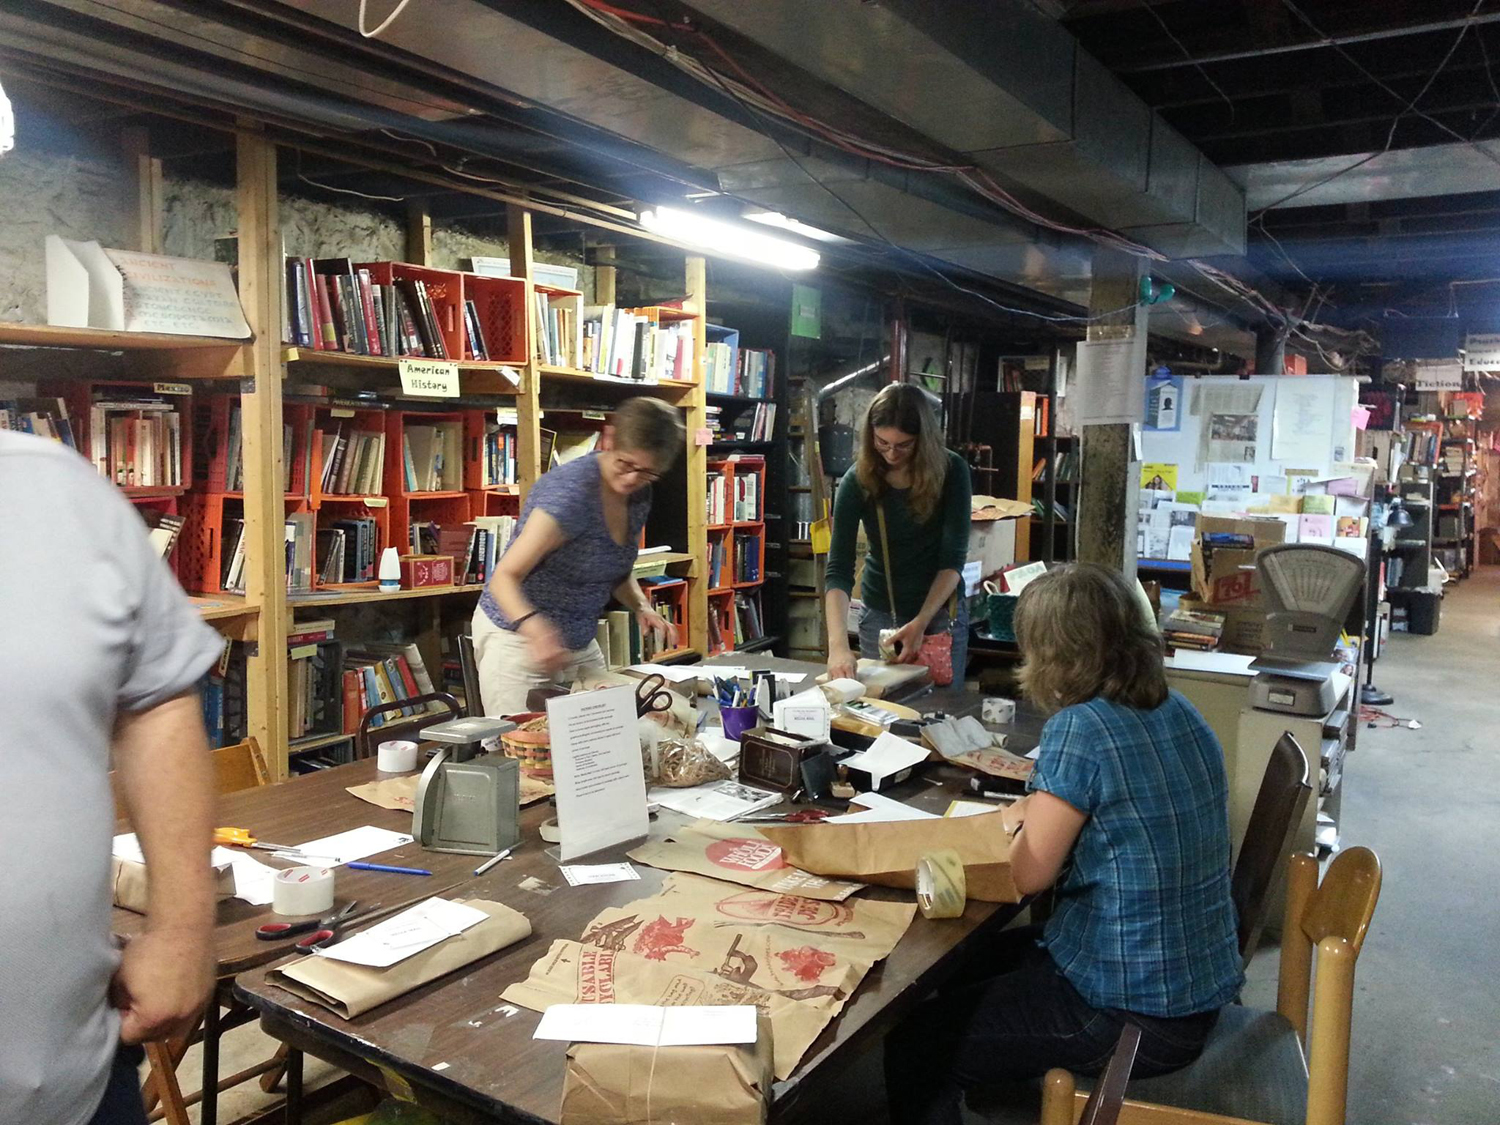 Volunteers at Book 'Em — a volunteer project run by the Thomas Merton Center — package books to send to prisoners in Pennsylvania on the first three Sundays of every month.